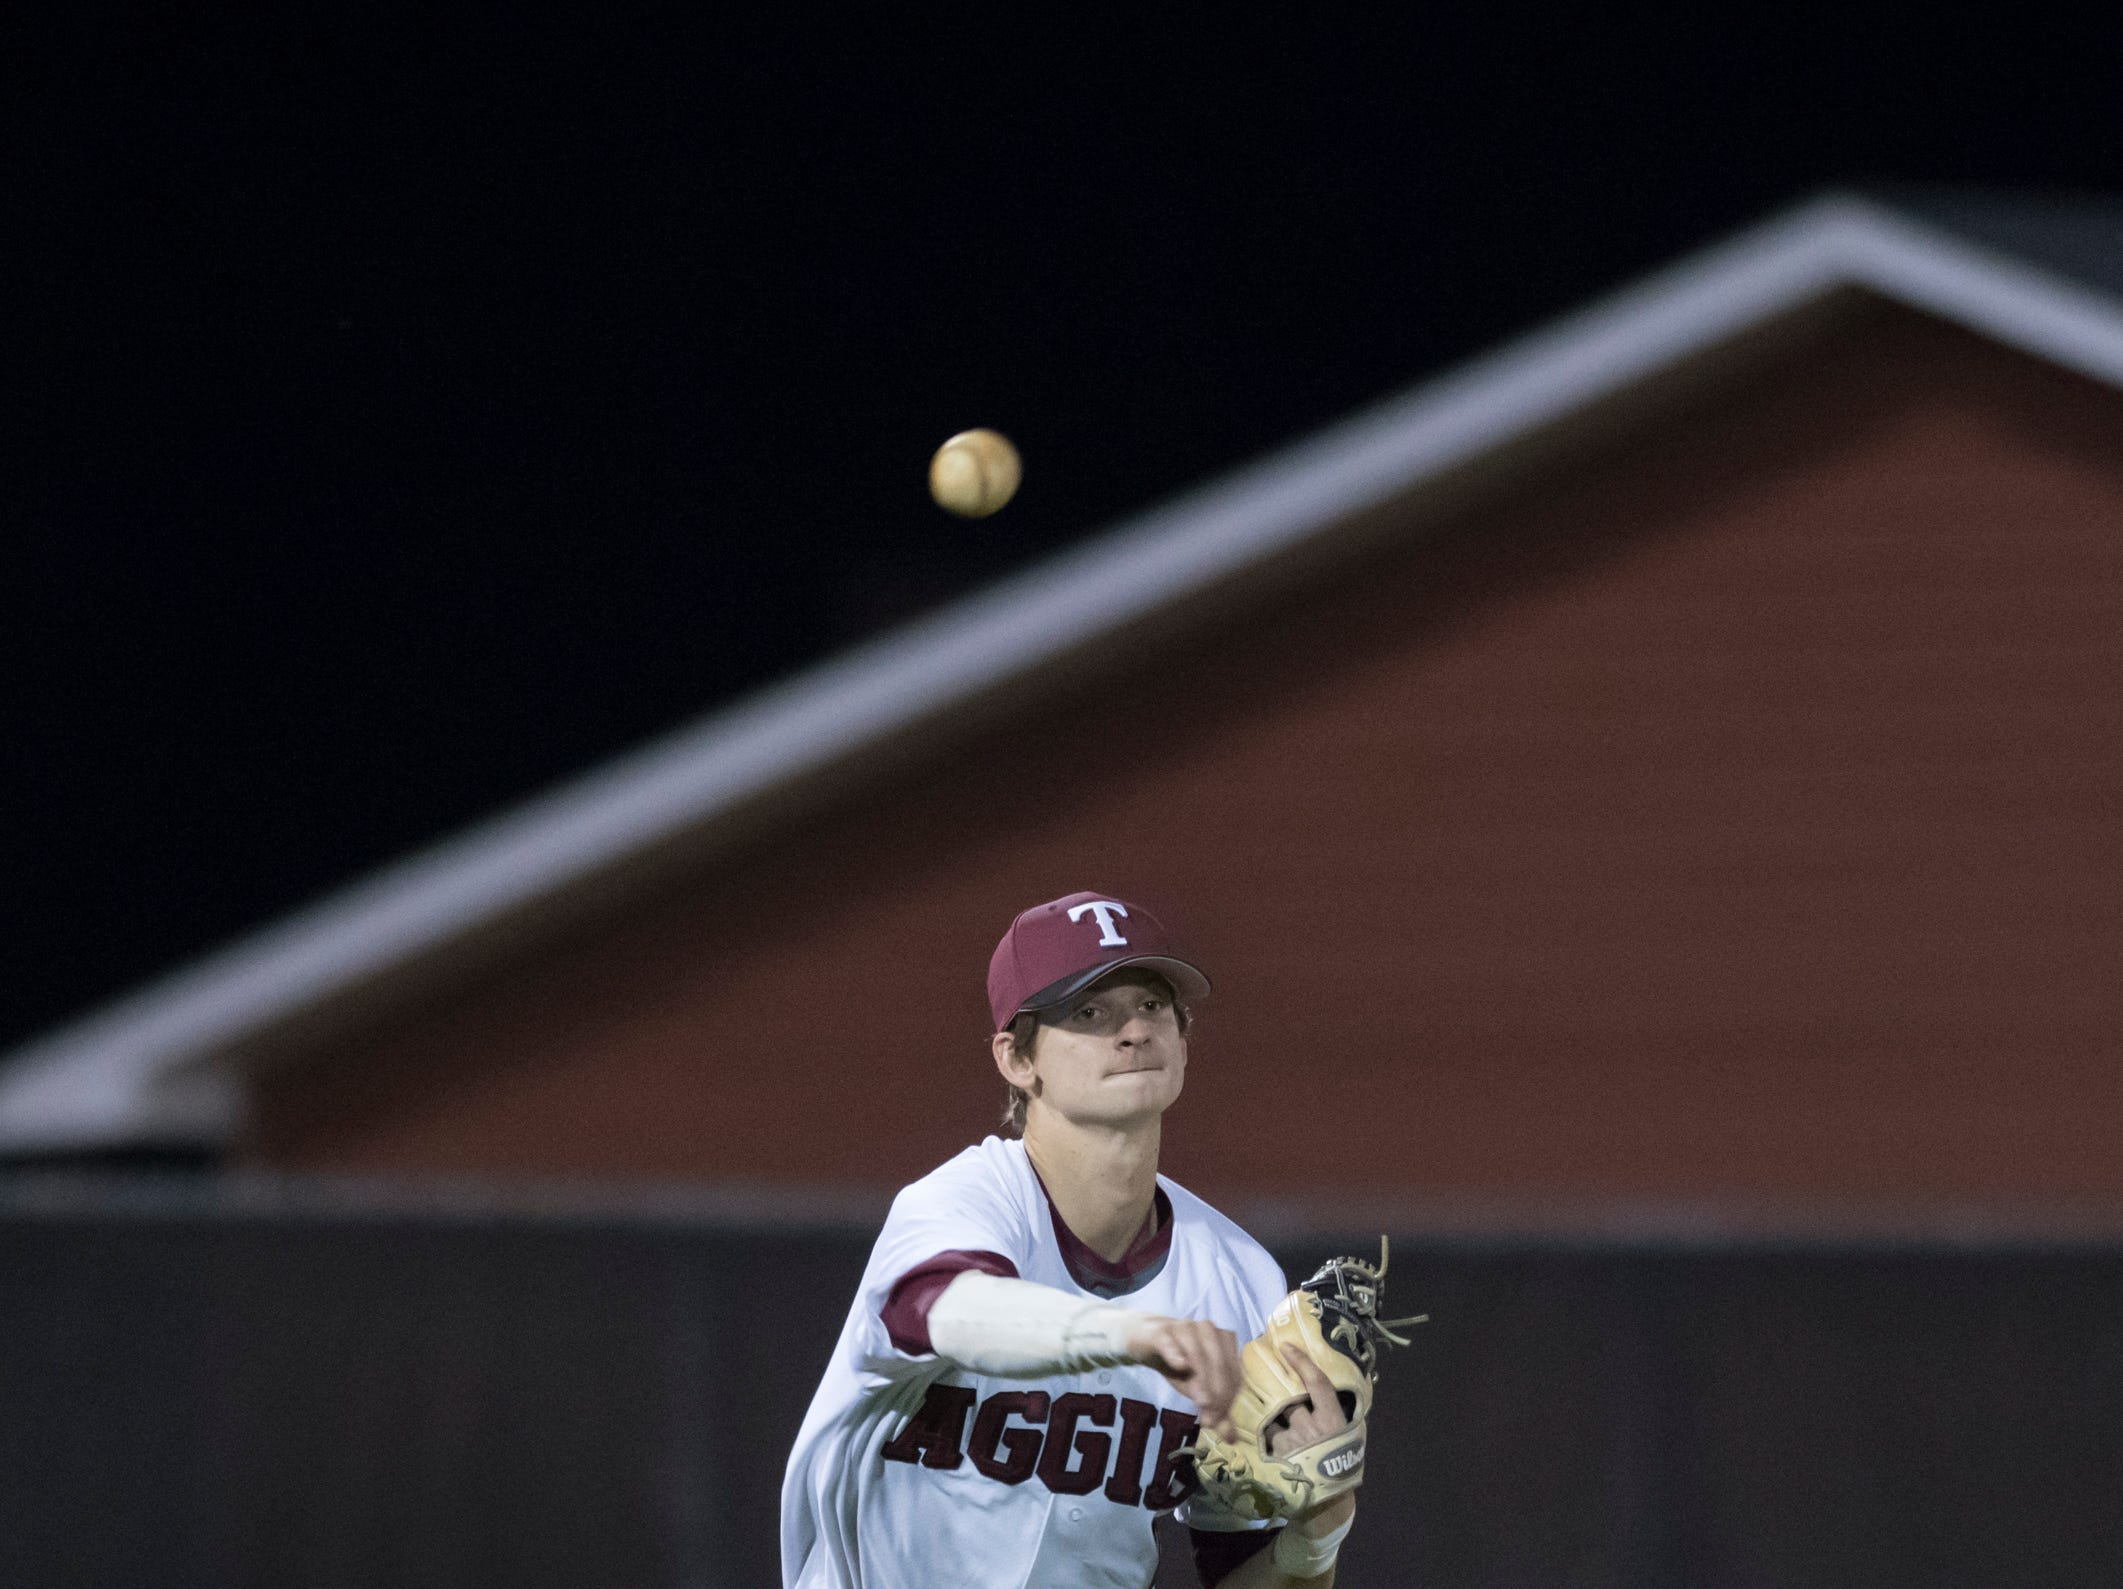 Third baseman Cole Fryman (2) throws to first for an out in the top of the 6th inning during the Pine Forest vs Tate baseball game at Tate High School on Thursday, March 7, 2019.  The Aggies won 4-3.